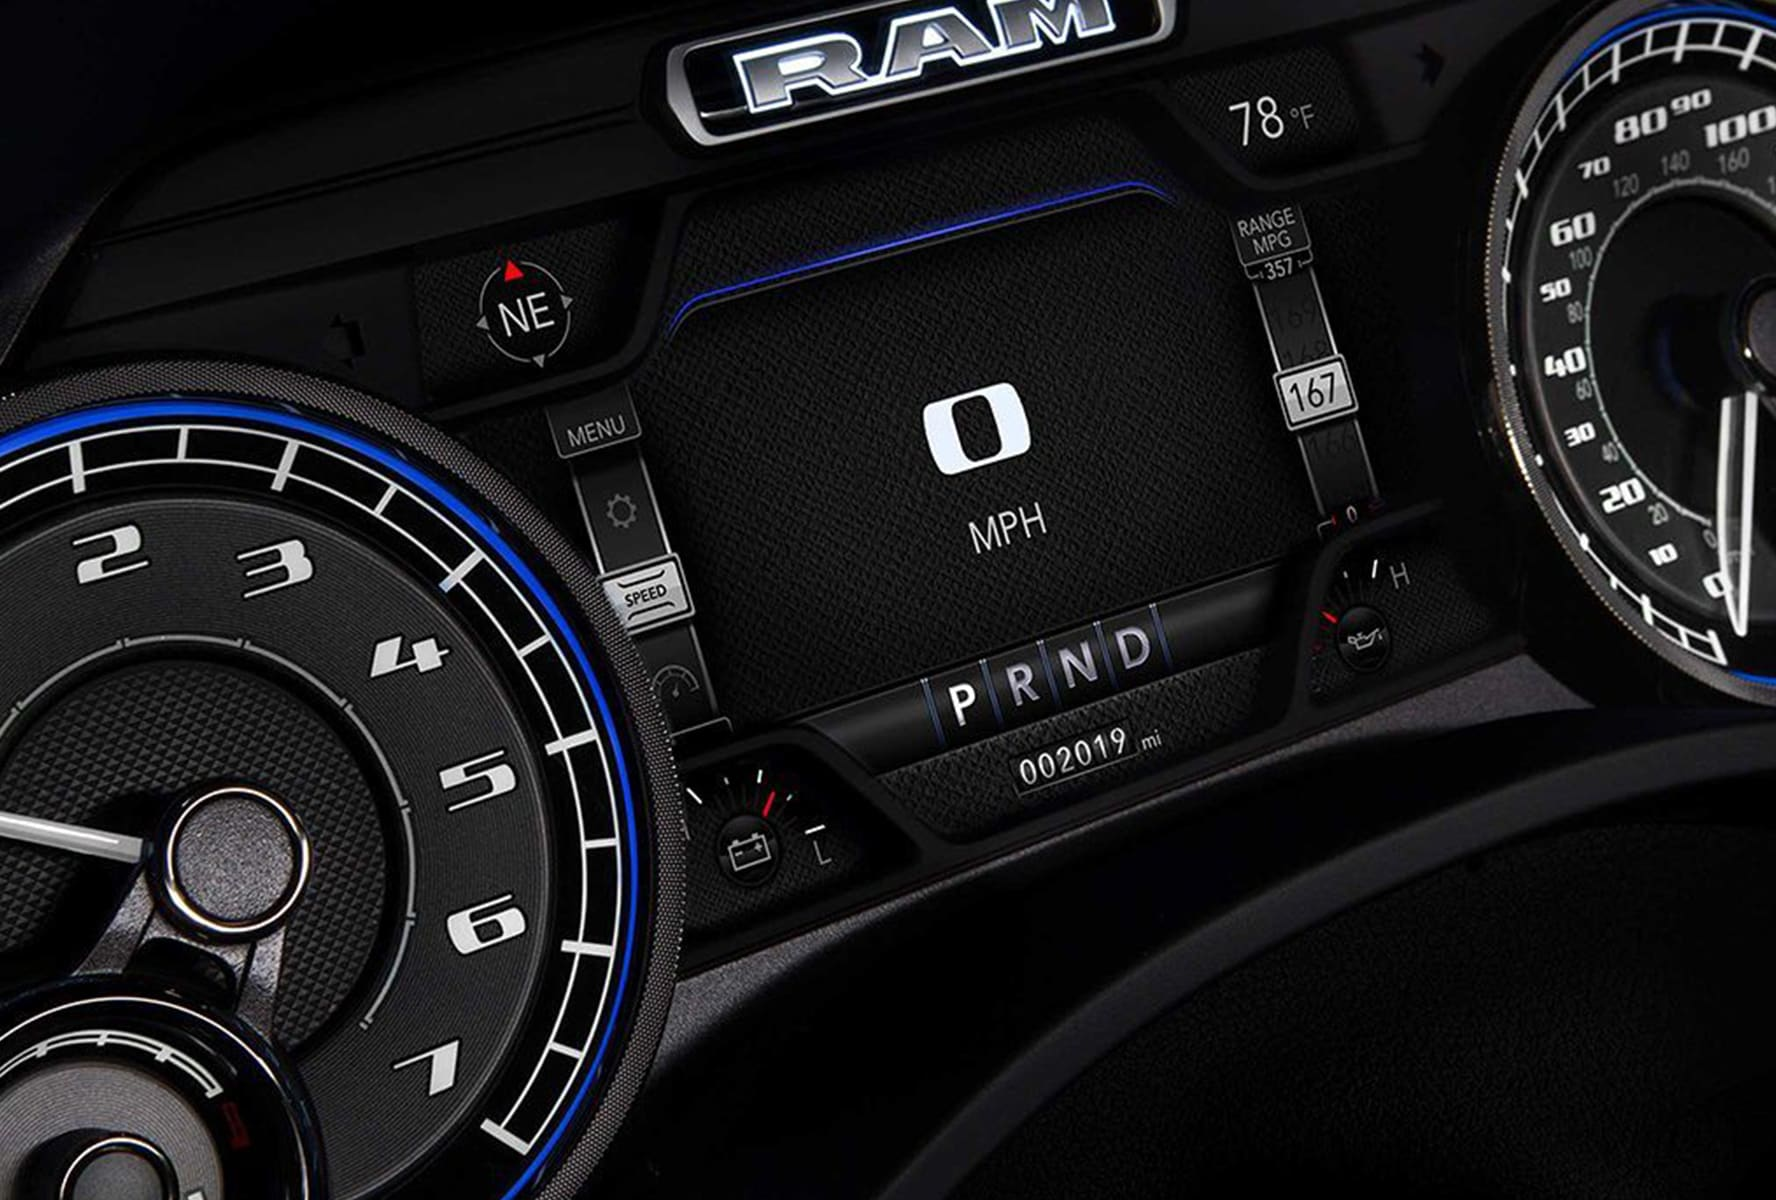 2019 Ram 1500 technology near Cincinnati, OH